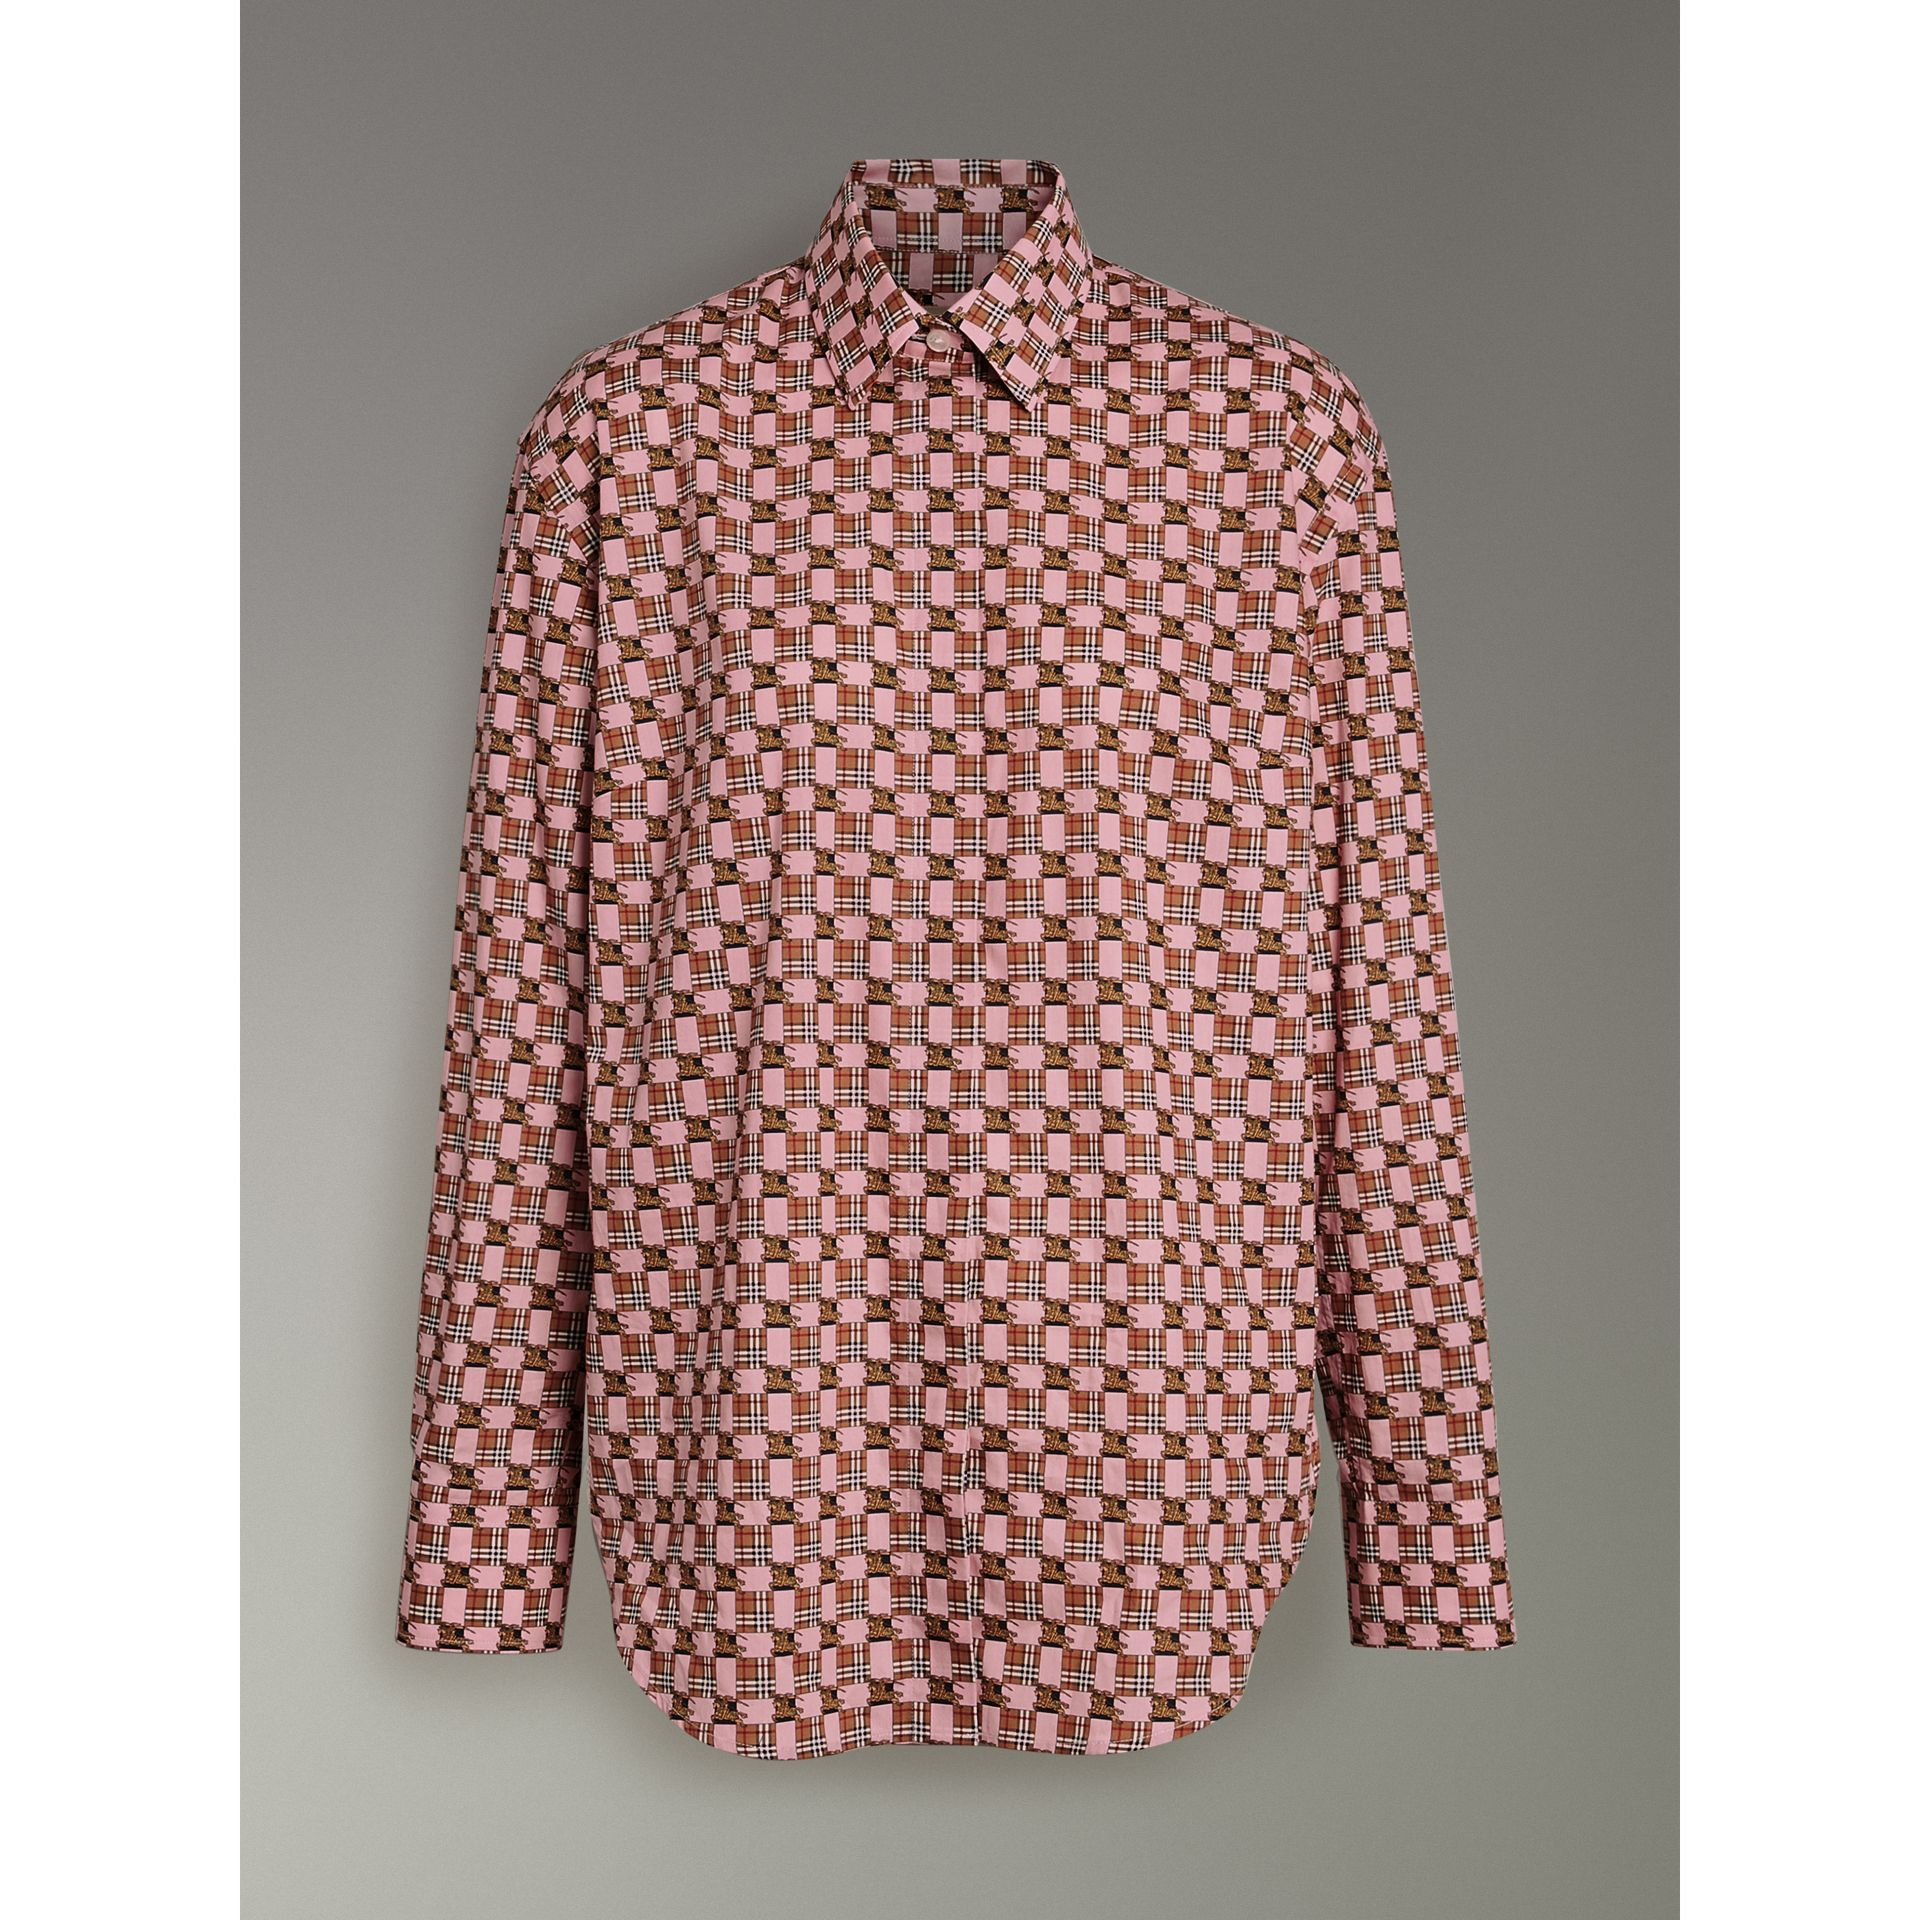 Tiled Archive Print Cotton Shirt in Pink - Women | Burberry United States - gallery image 3